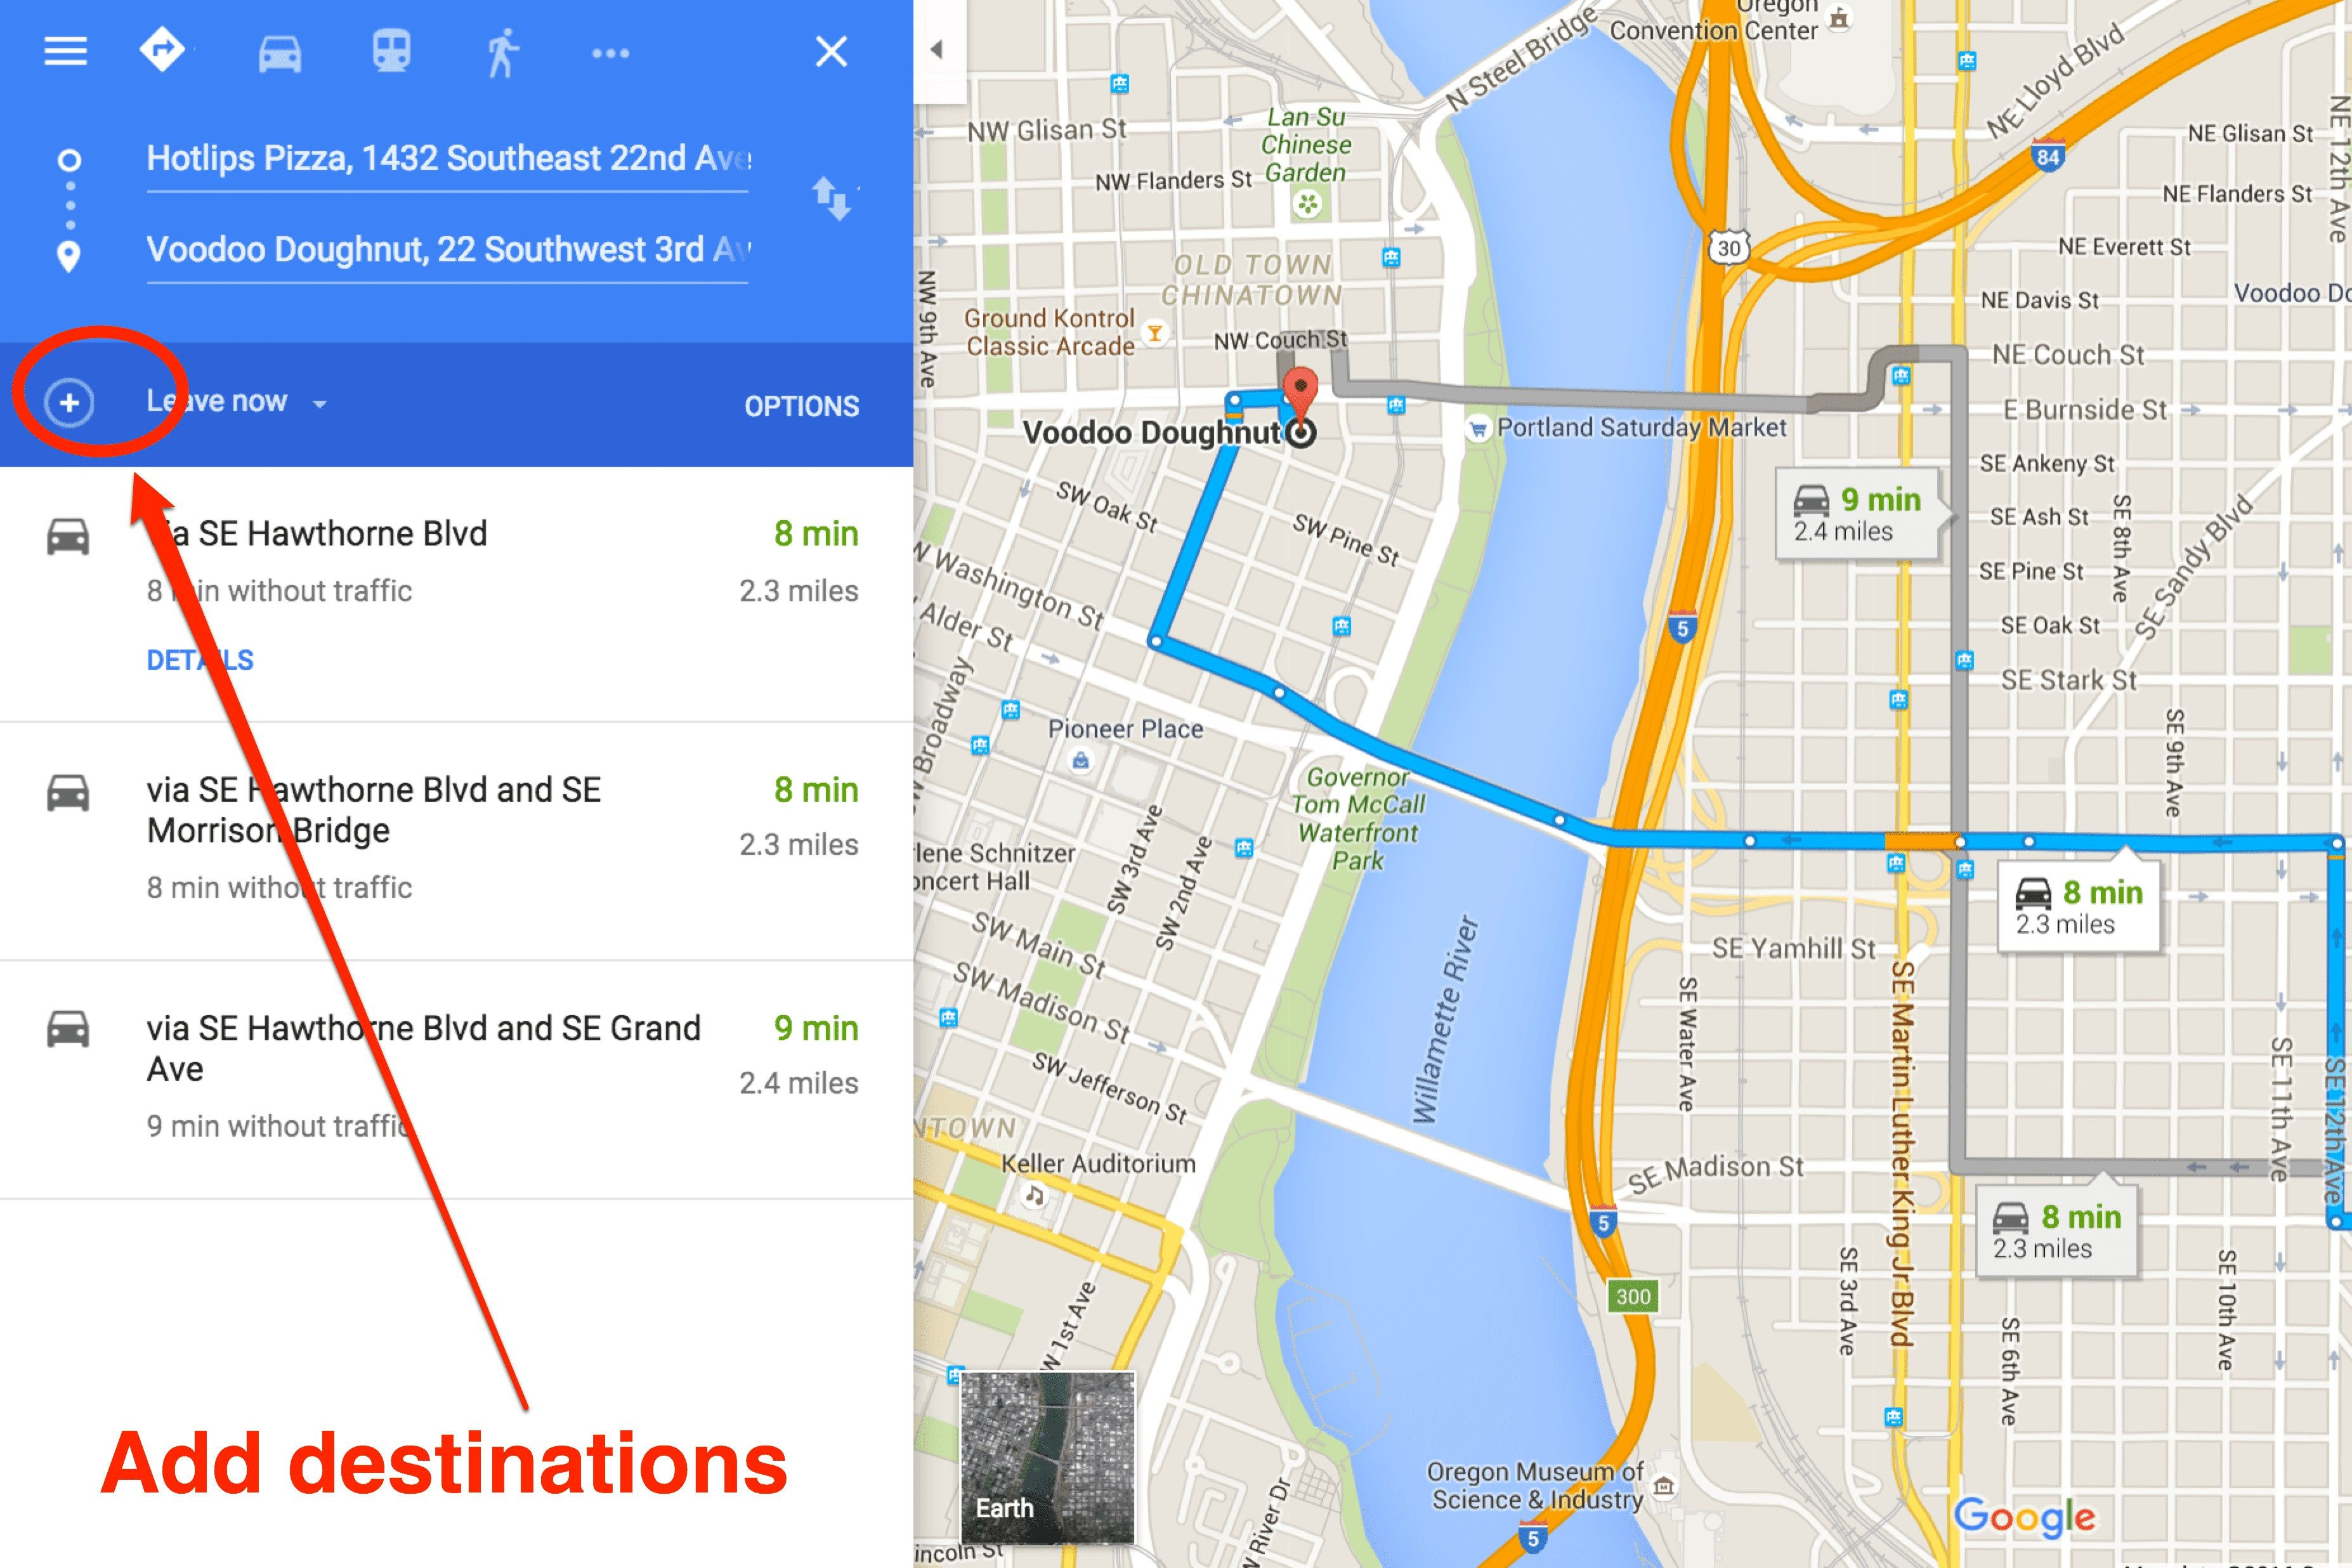 How To Get Driving Directions And More From Google Maps - Free Printable Driving Directions